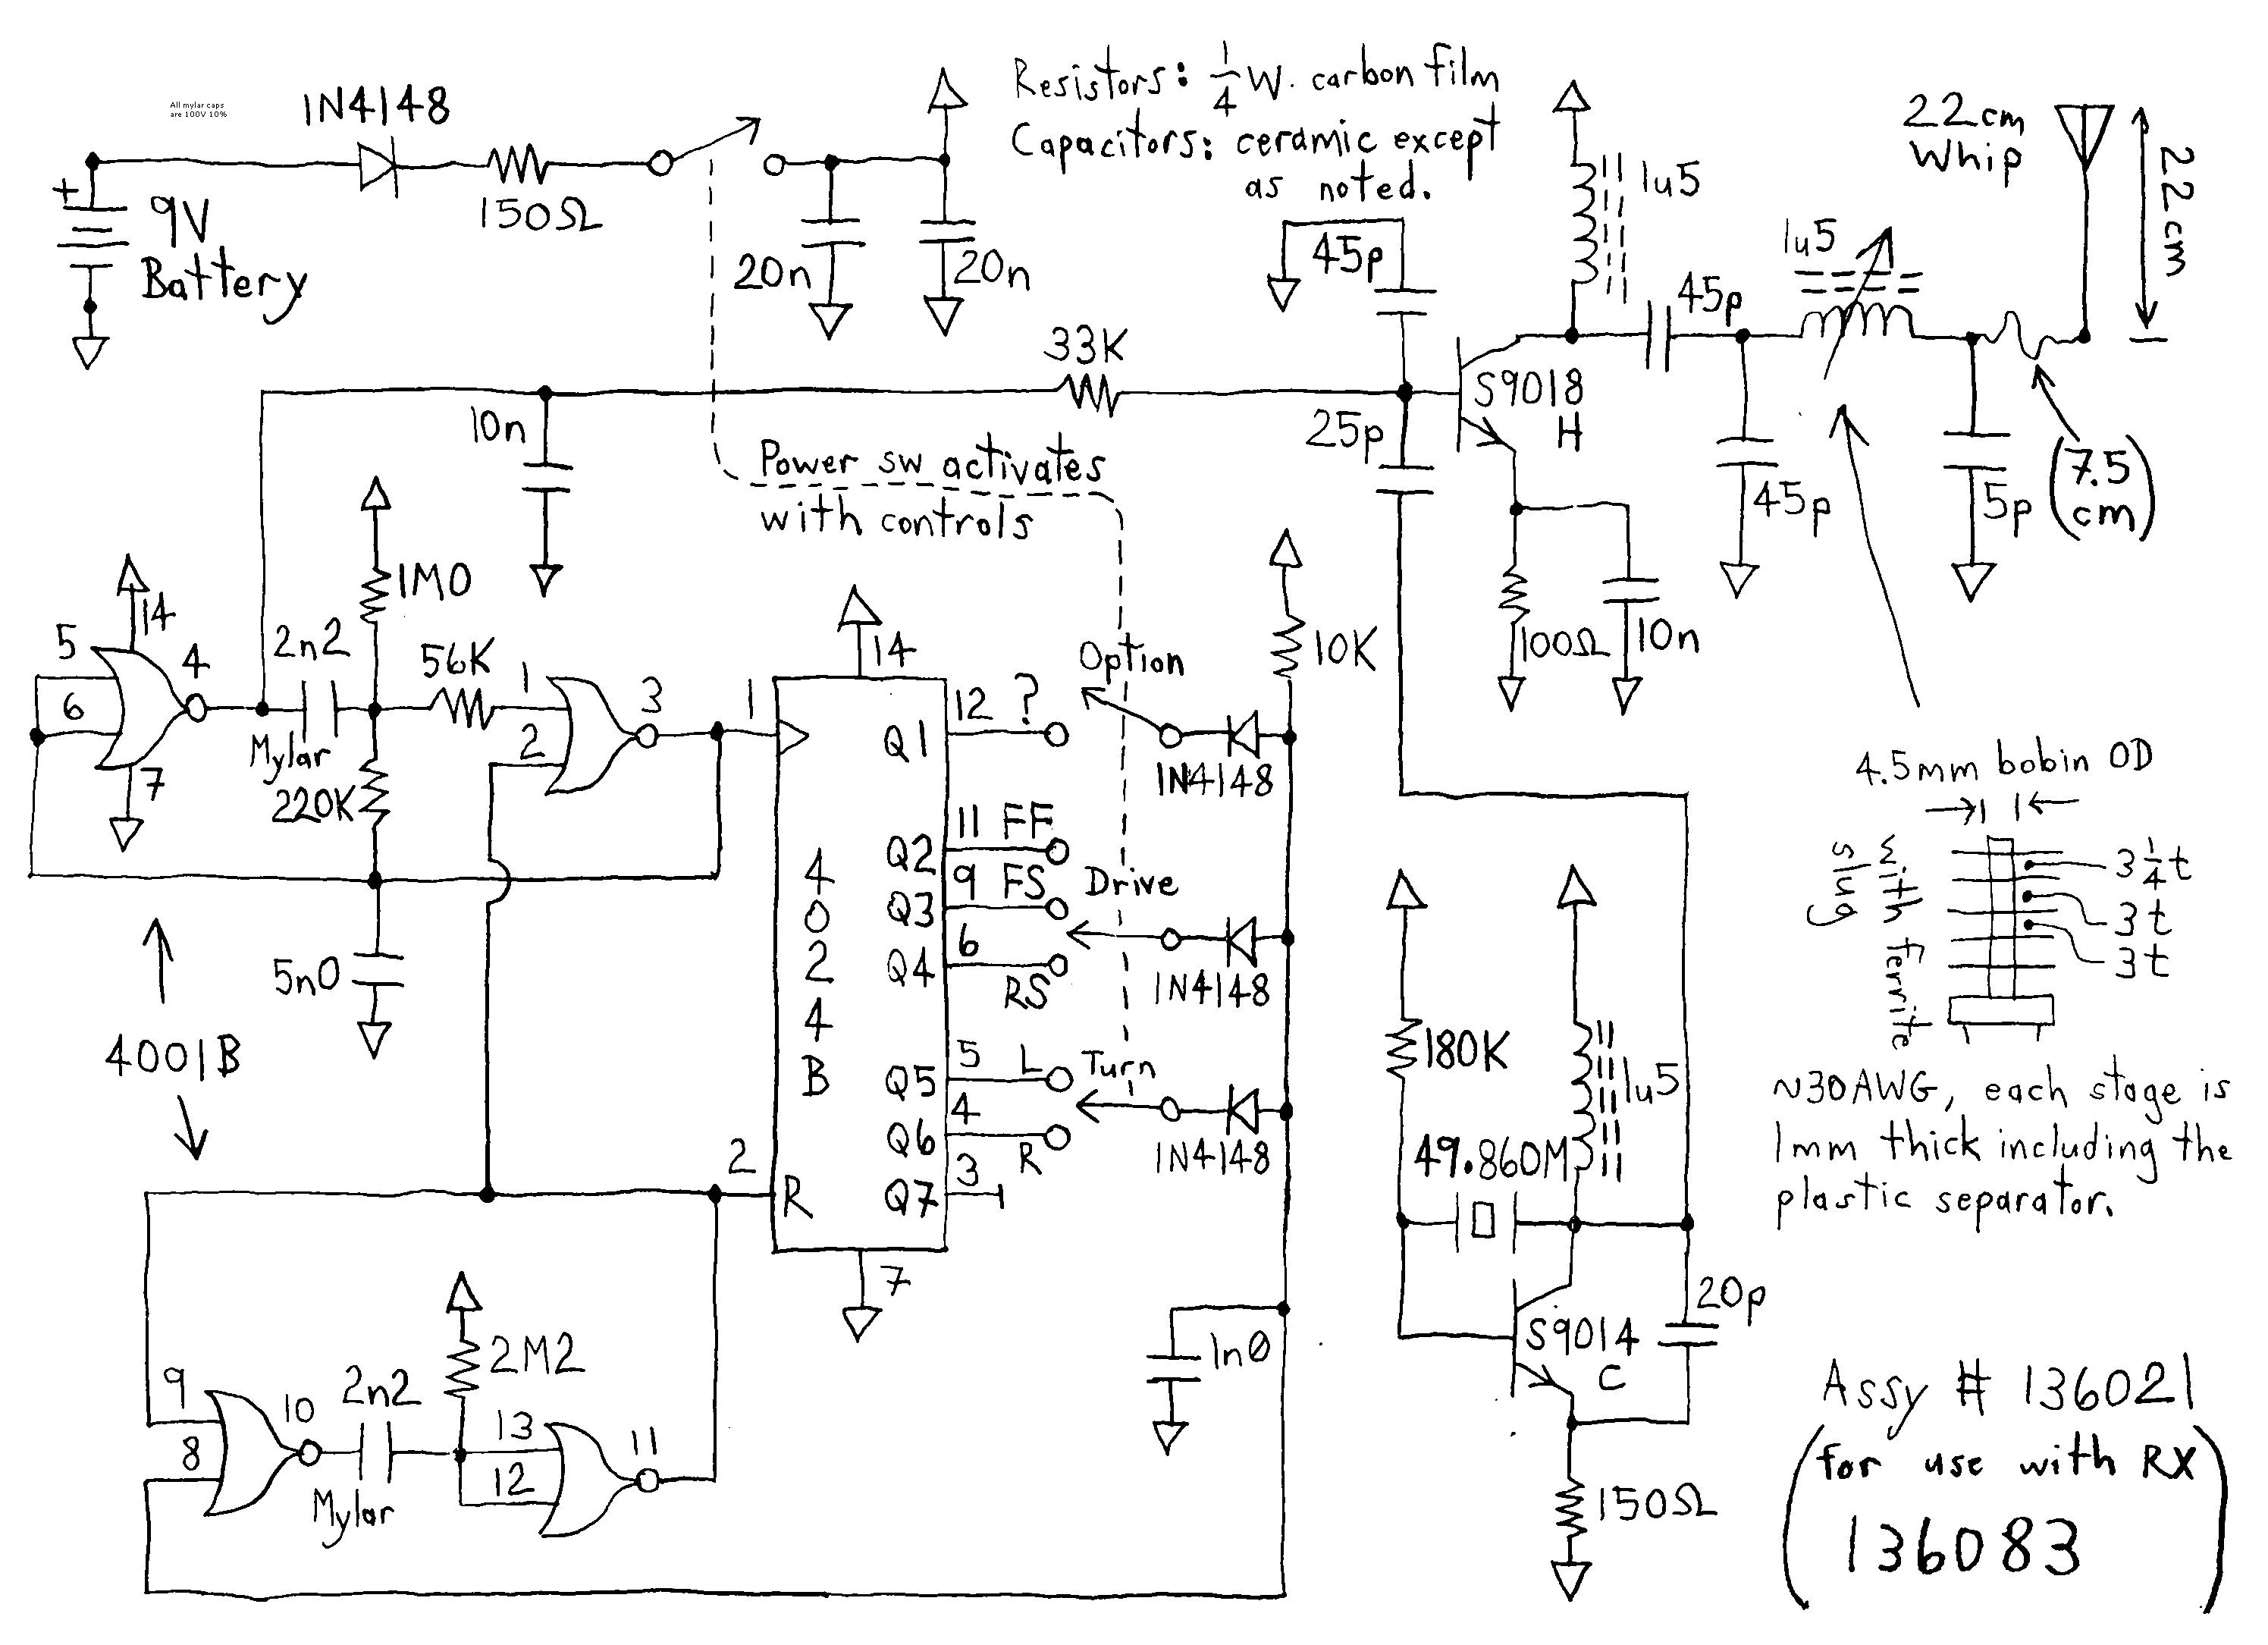 Car Diagrams for Ui Design Step Dimming Ballast Wiring Diagram Wiring Diagram for • Of Car Diagrams for Ui Design